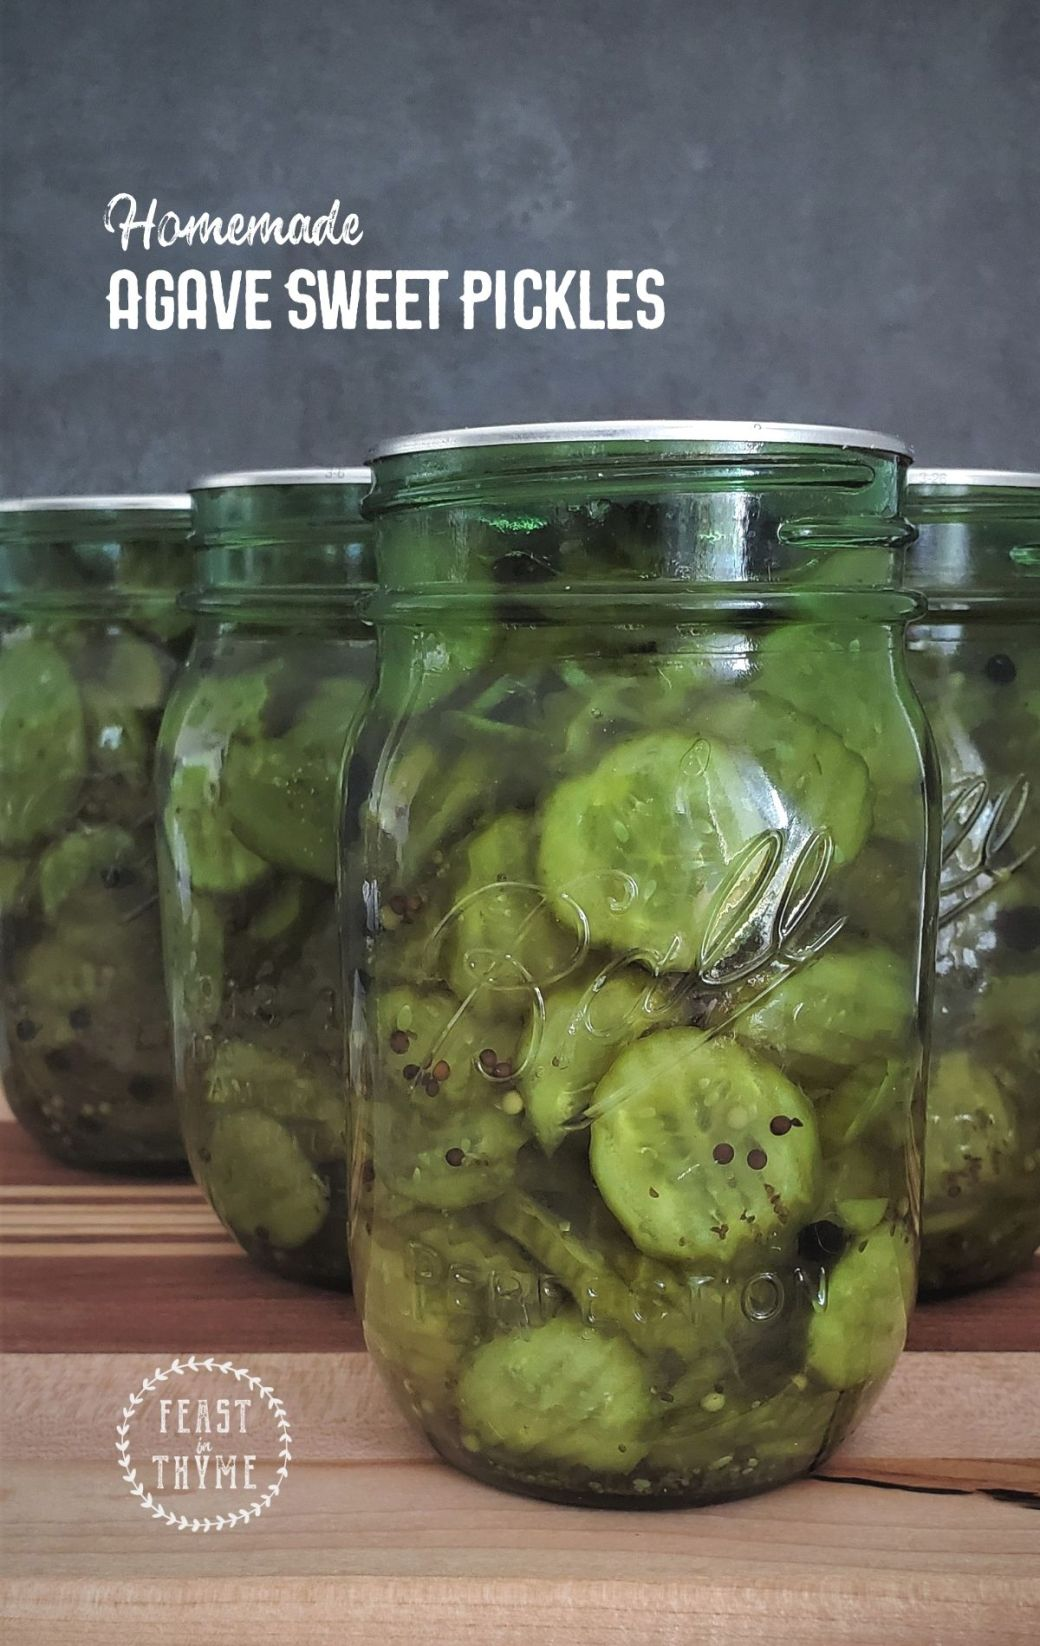 Homemade Agave Sweet Pickles